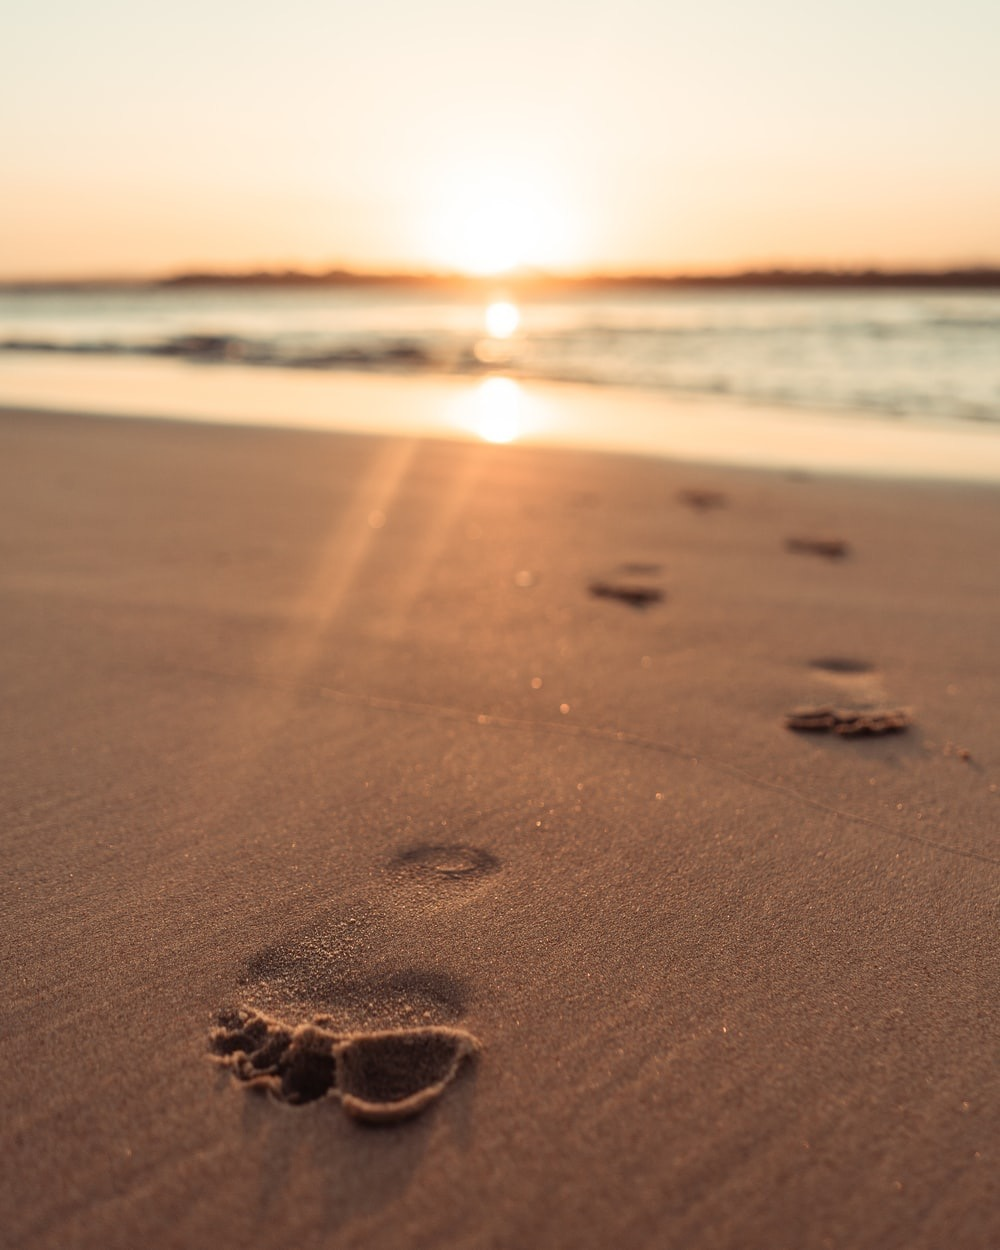 Footprints left behind on a beautiful beach travel location.